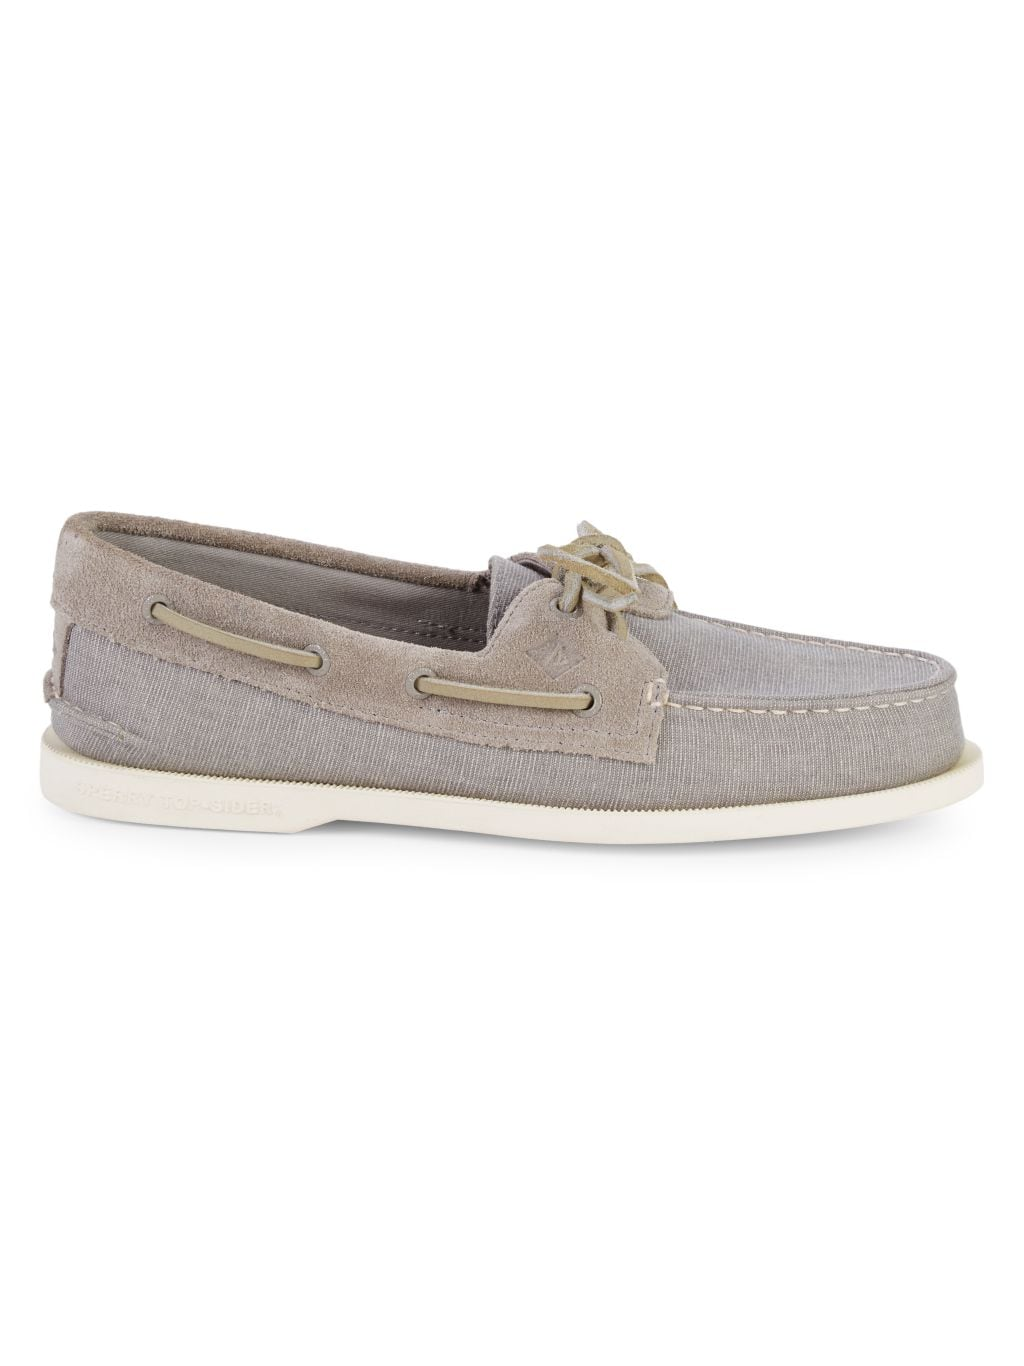 Sperry Bow Slip-On Boat Shoes